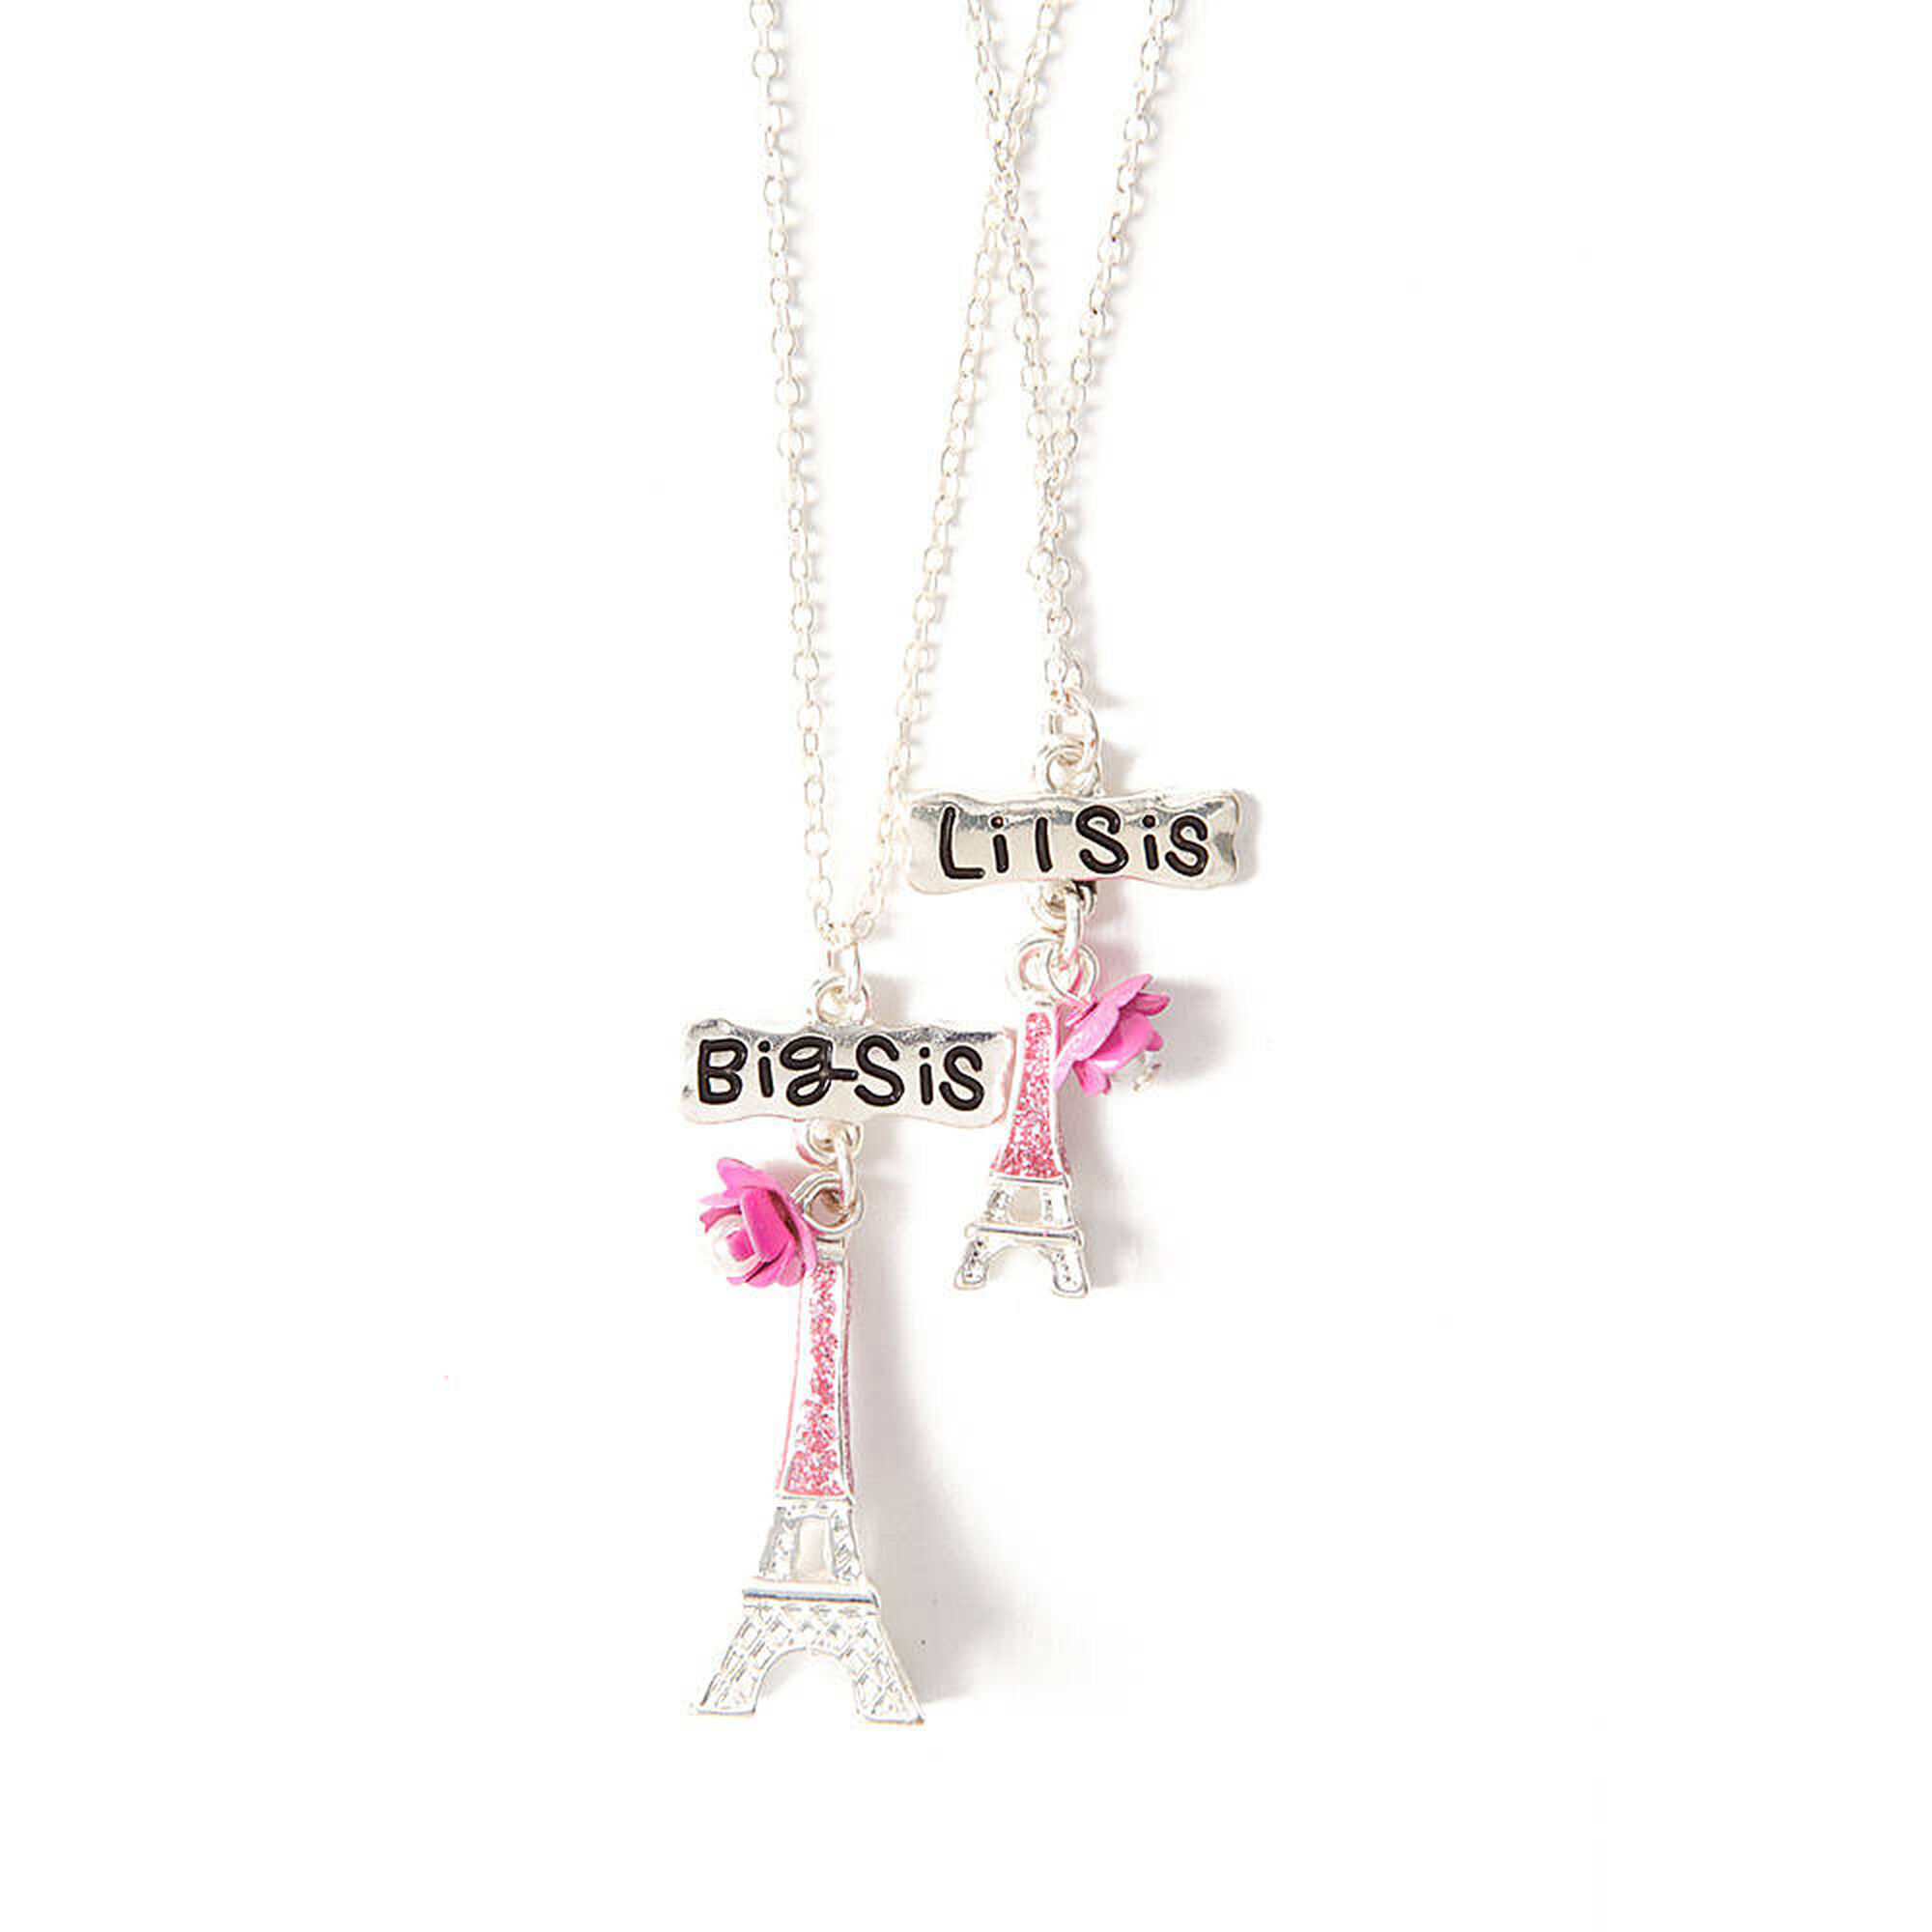 Big Sister Little Sister Eiffel Tower Pendant Necklaces